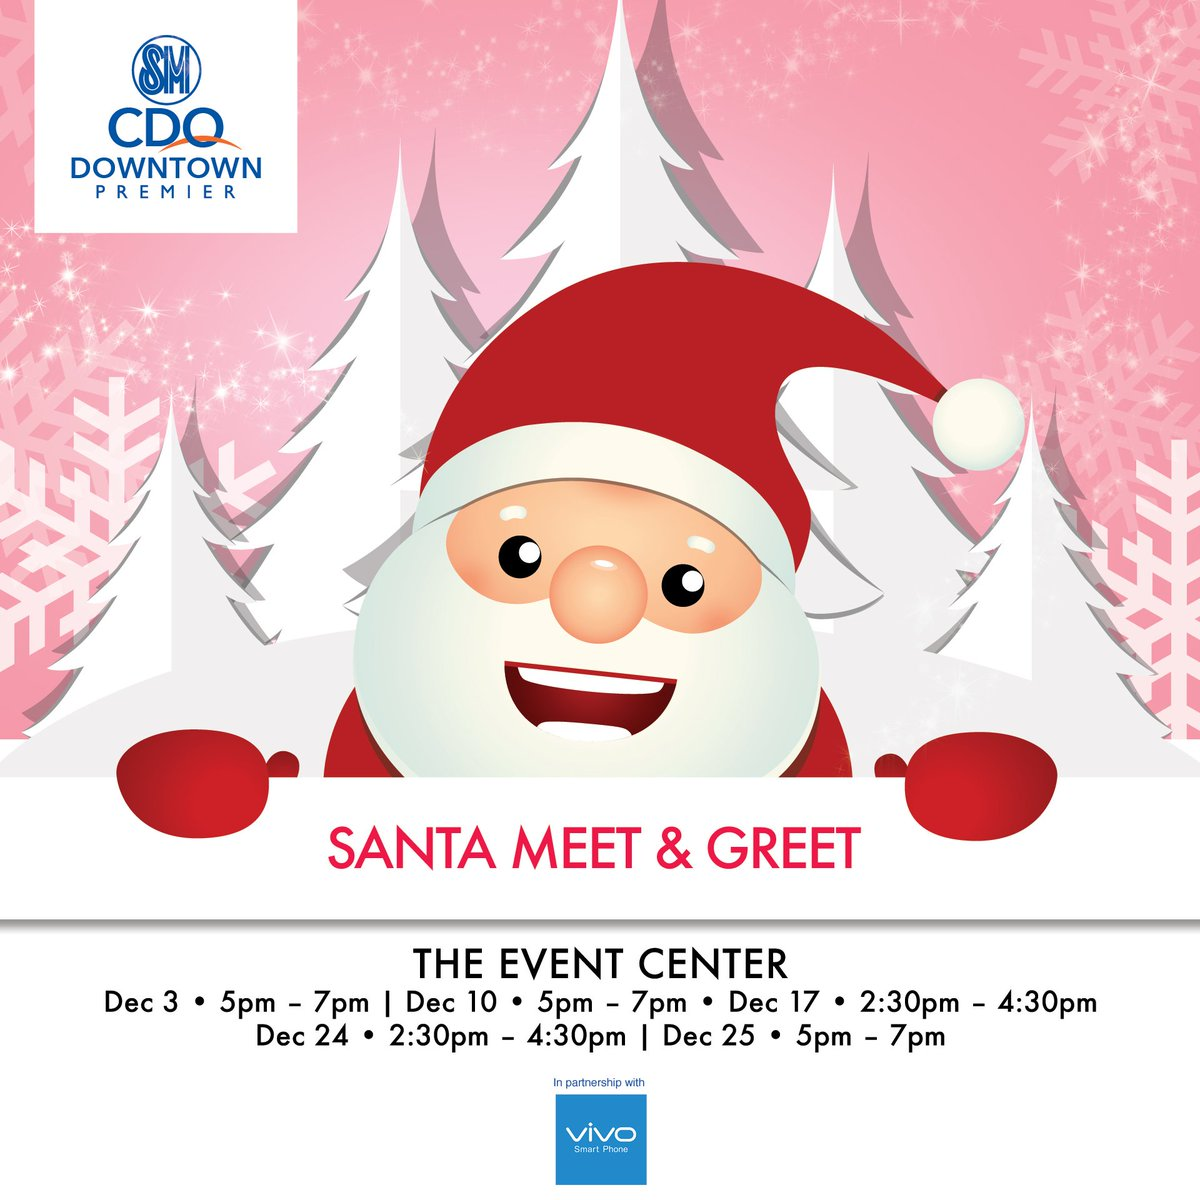 Sm Supermalls On Twitter Meet And Greet Santa Claus Today At